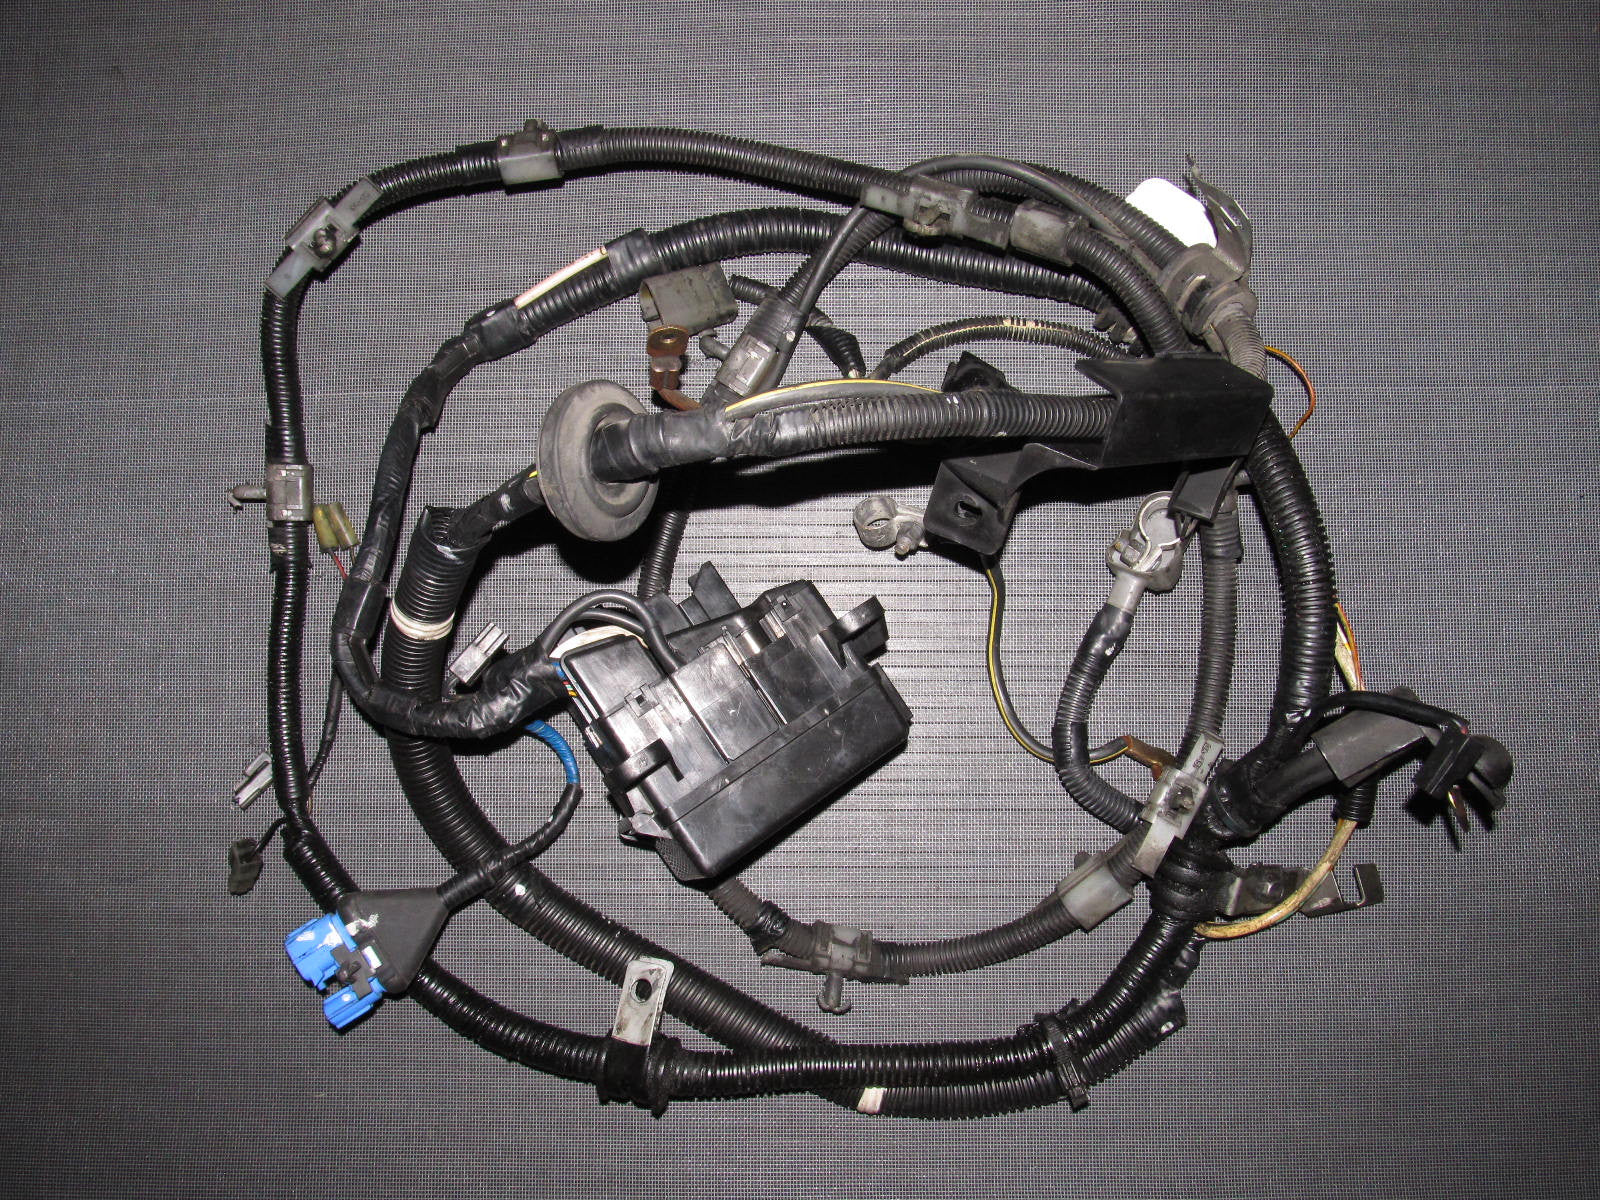 90 91 92 93 Mazda Miata Fuse Box Transmission Engine Wiring Main Harness